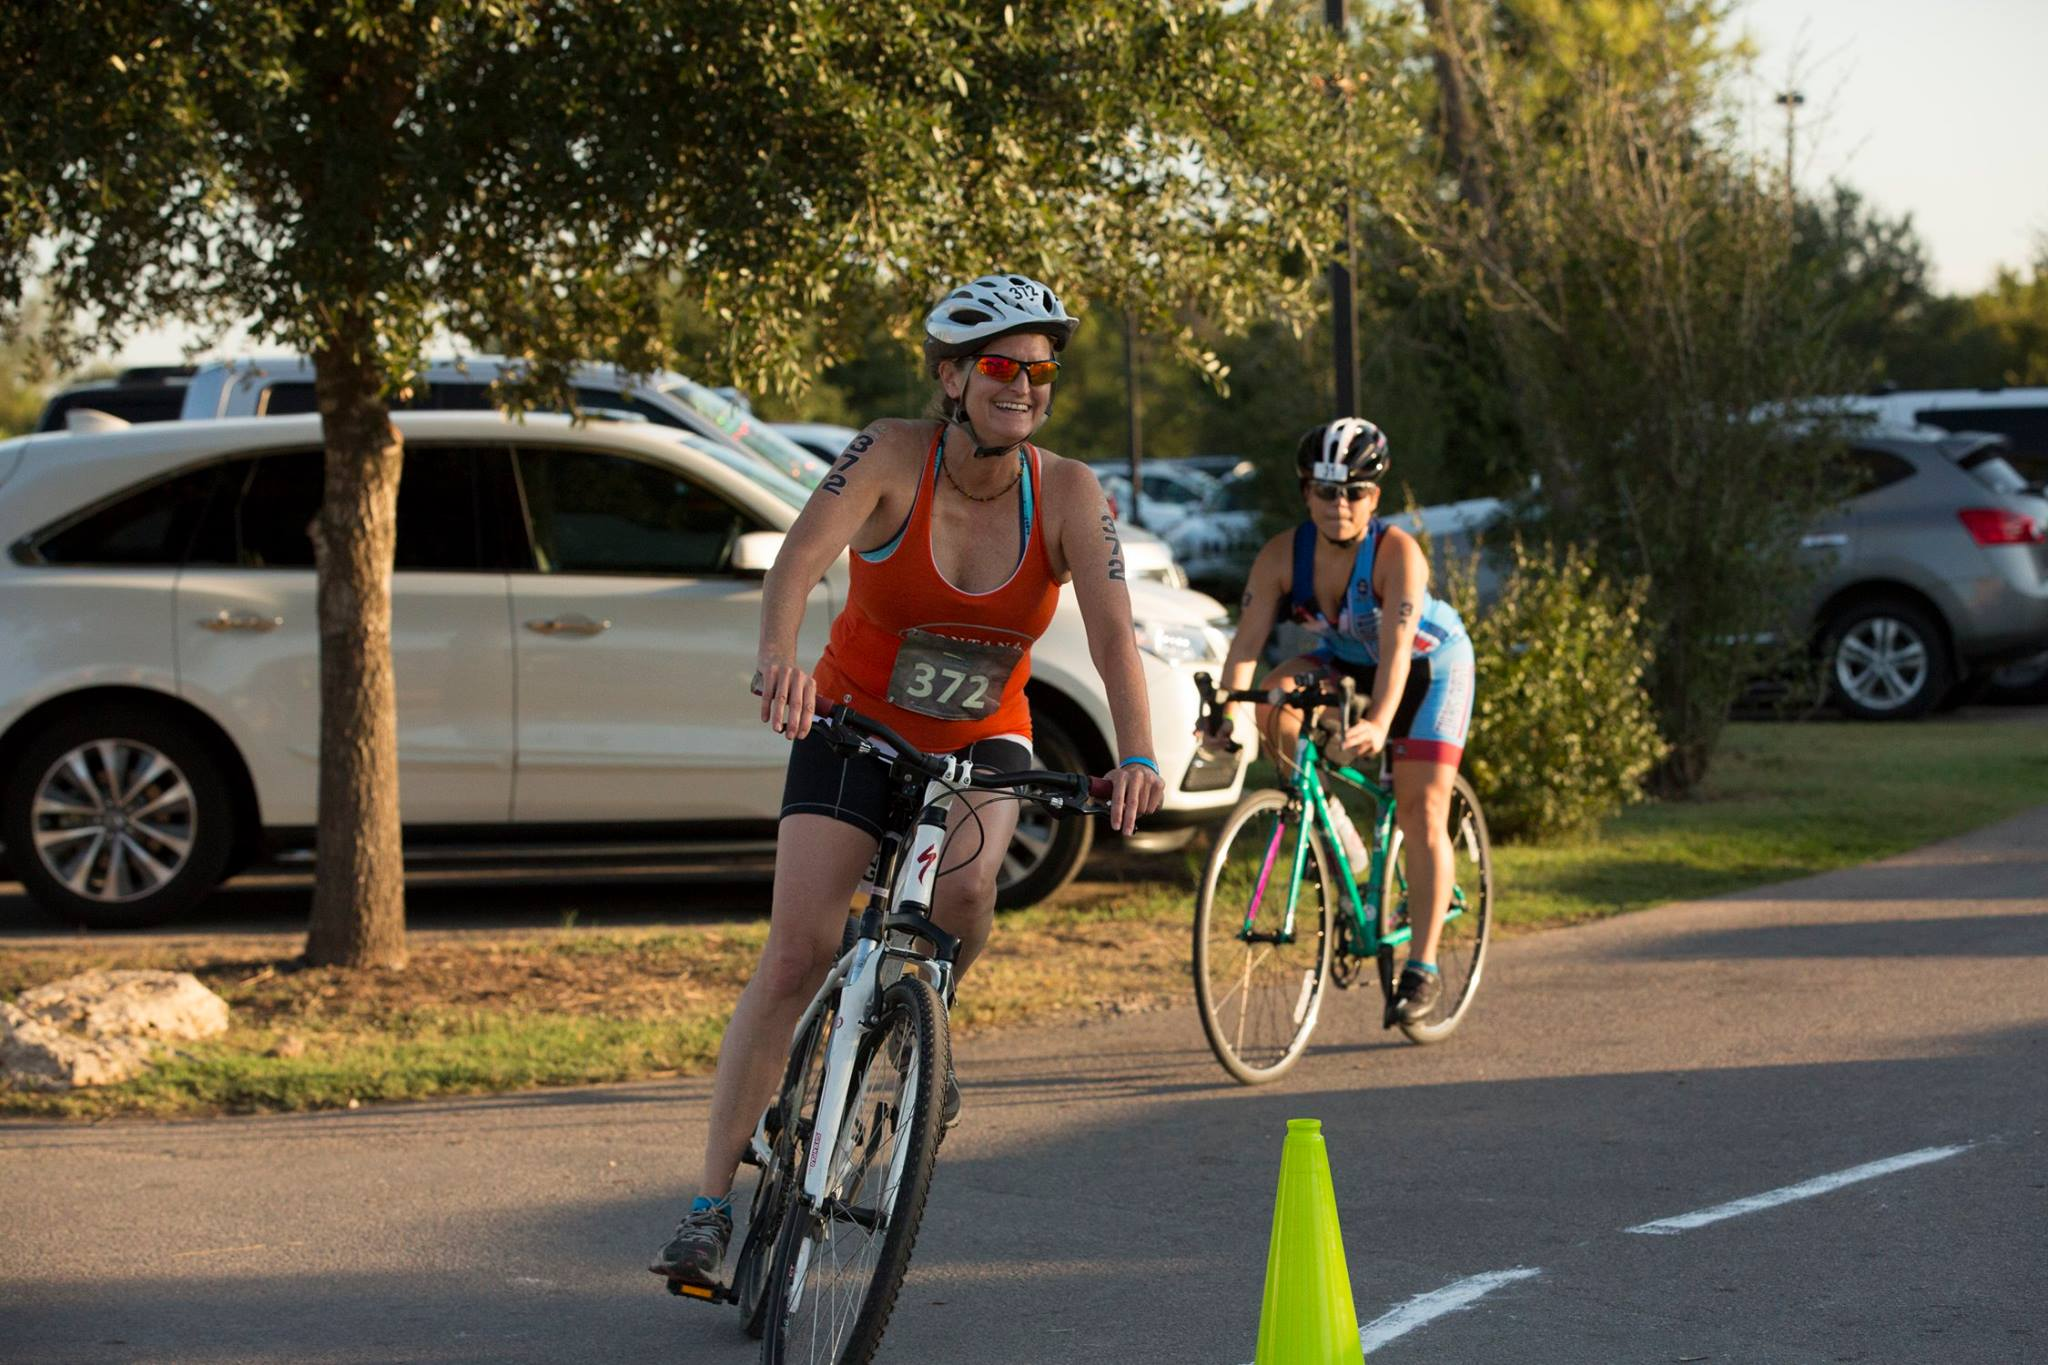 Jeannie Ralston biking in triathlon